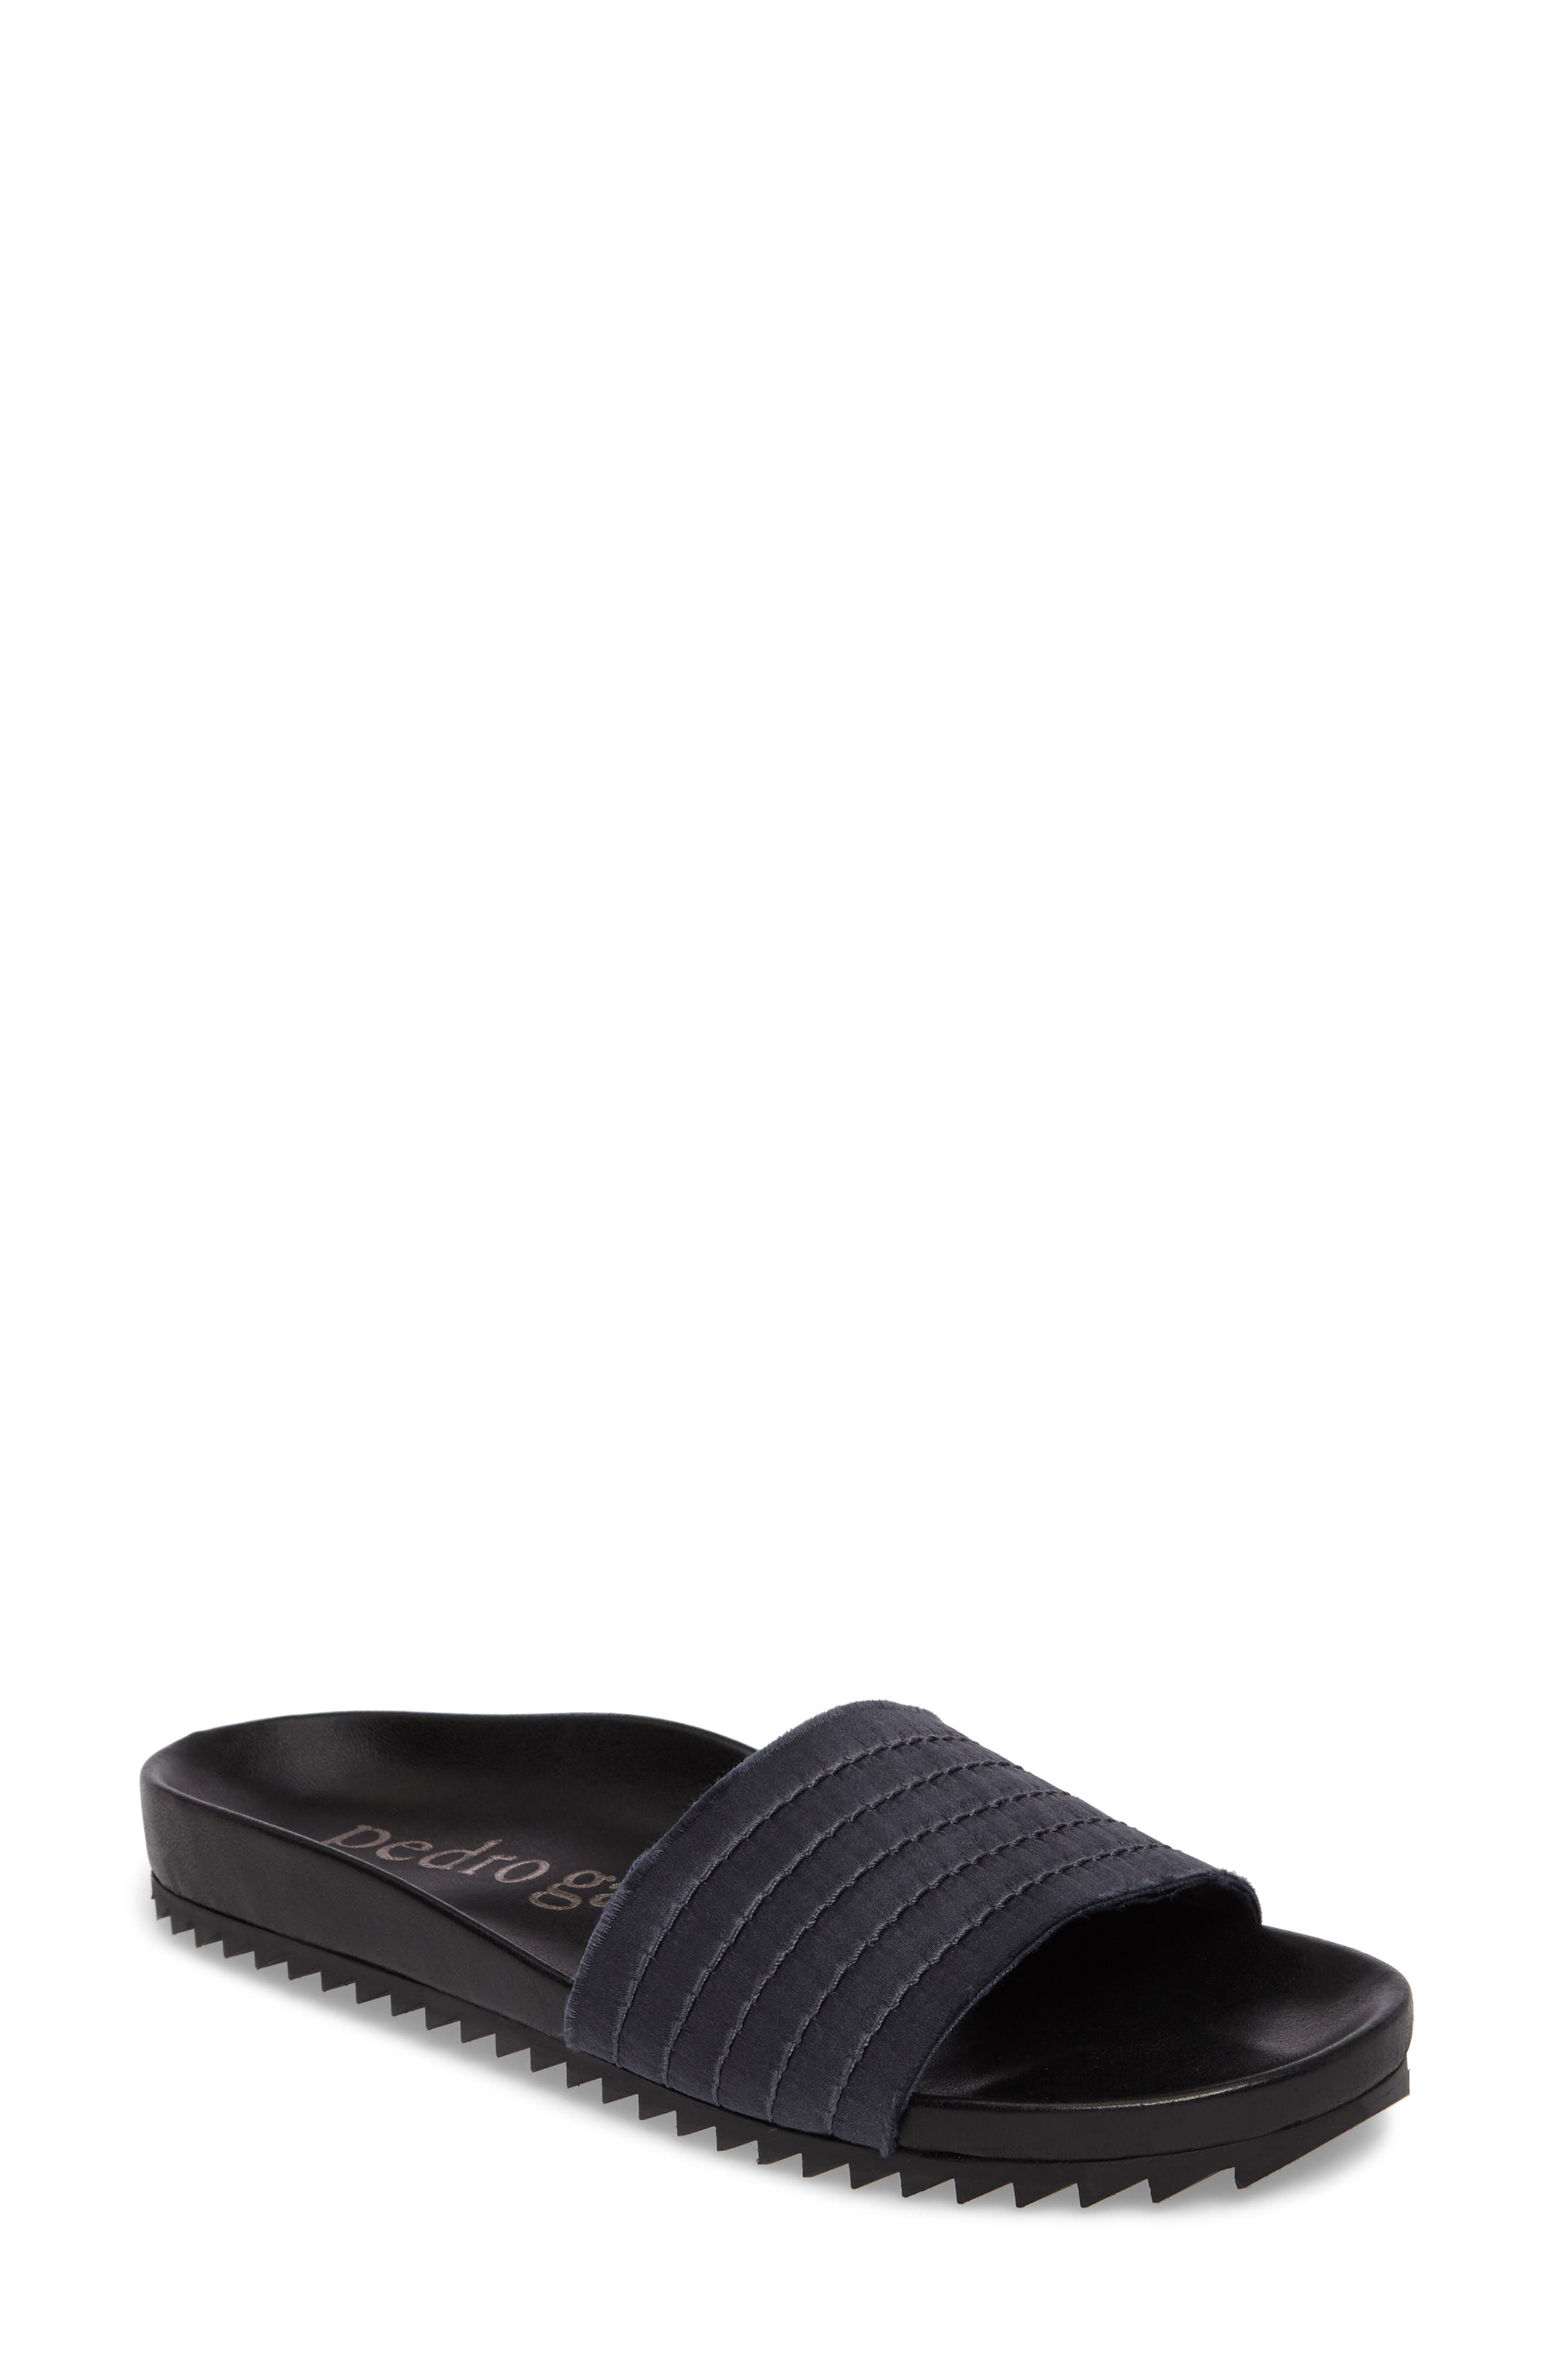 Amparo Slide Sandal,                         Main,                         color,